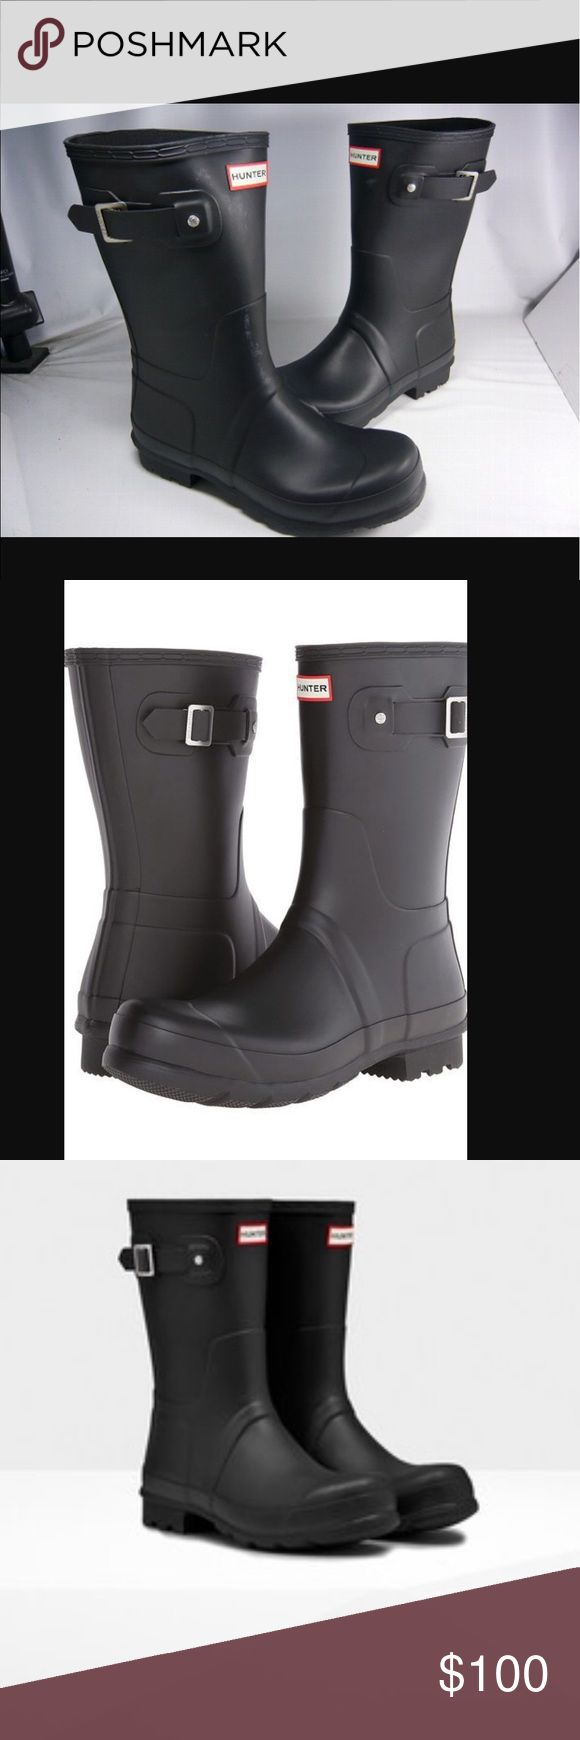 Hunter Men's Rain Boots Hunter is one of the best rain boots brands in the world. The boot is Brand new with the box. Good rich looking black rain boot. Hunter Boots Shoes Boots